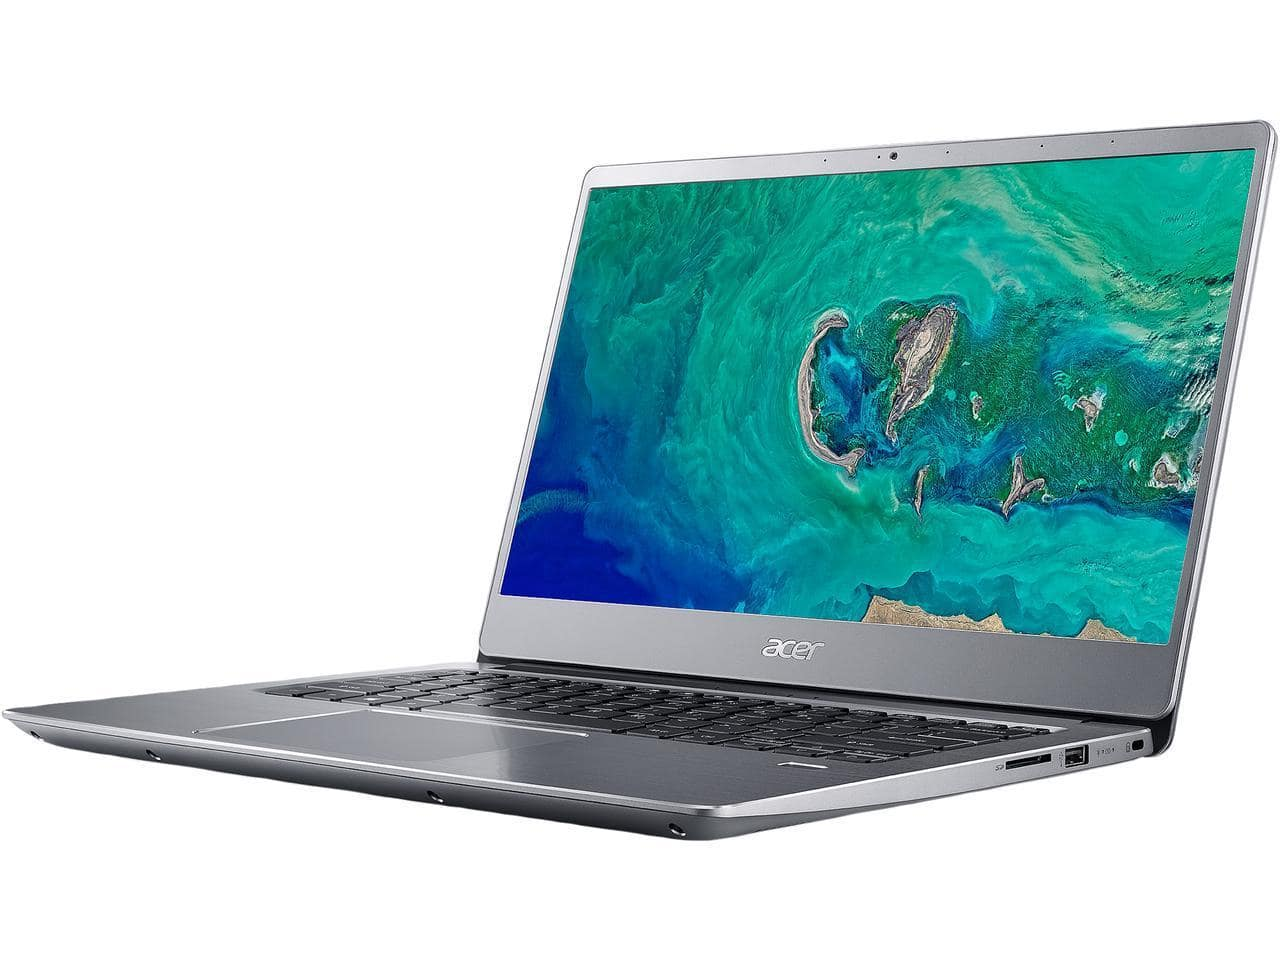 "Acer Laptop Swift 3 Intel Core i5 8th Gen 8250U (1.60 GHz) 8 GB Memory 256 GB SSD Intel UHD Graphics 620 14.0"" Windows 10 Home 64-Bit SF314-54-53BQ - $529.99 + FS"